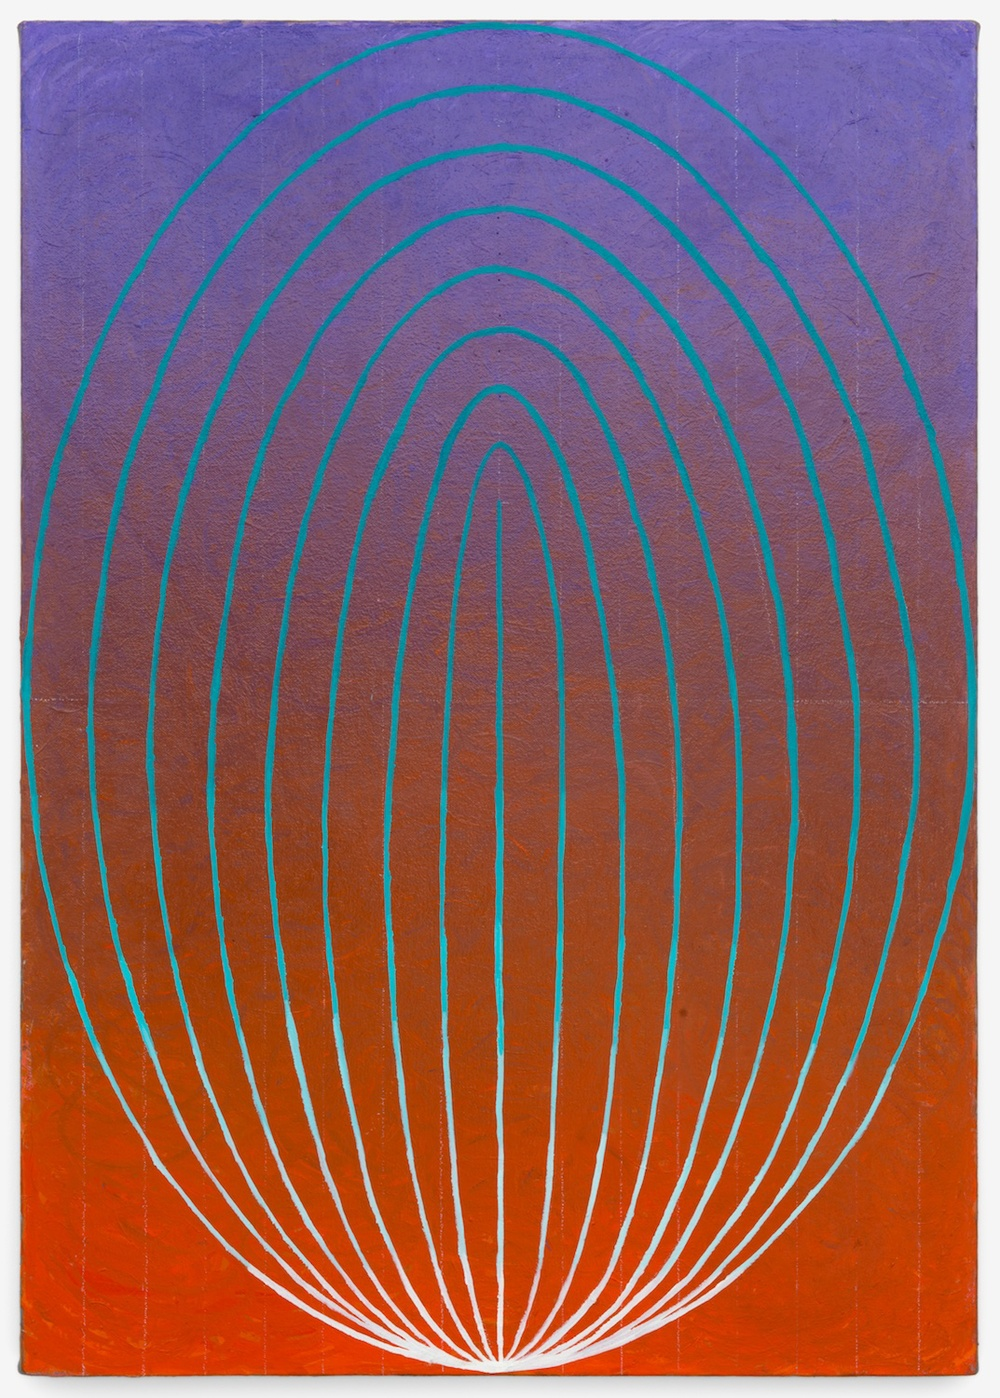 "Philip Hanson Oval 1 2012 Oil on canvas 34"" x 24"" PHan004"